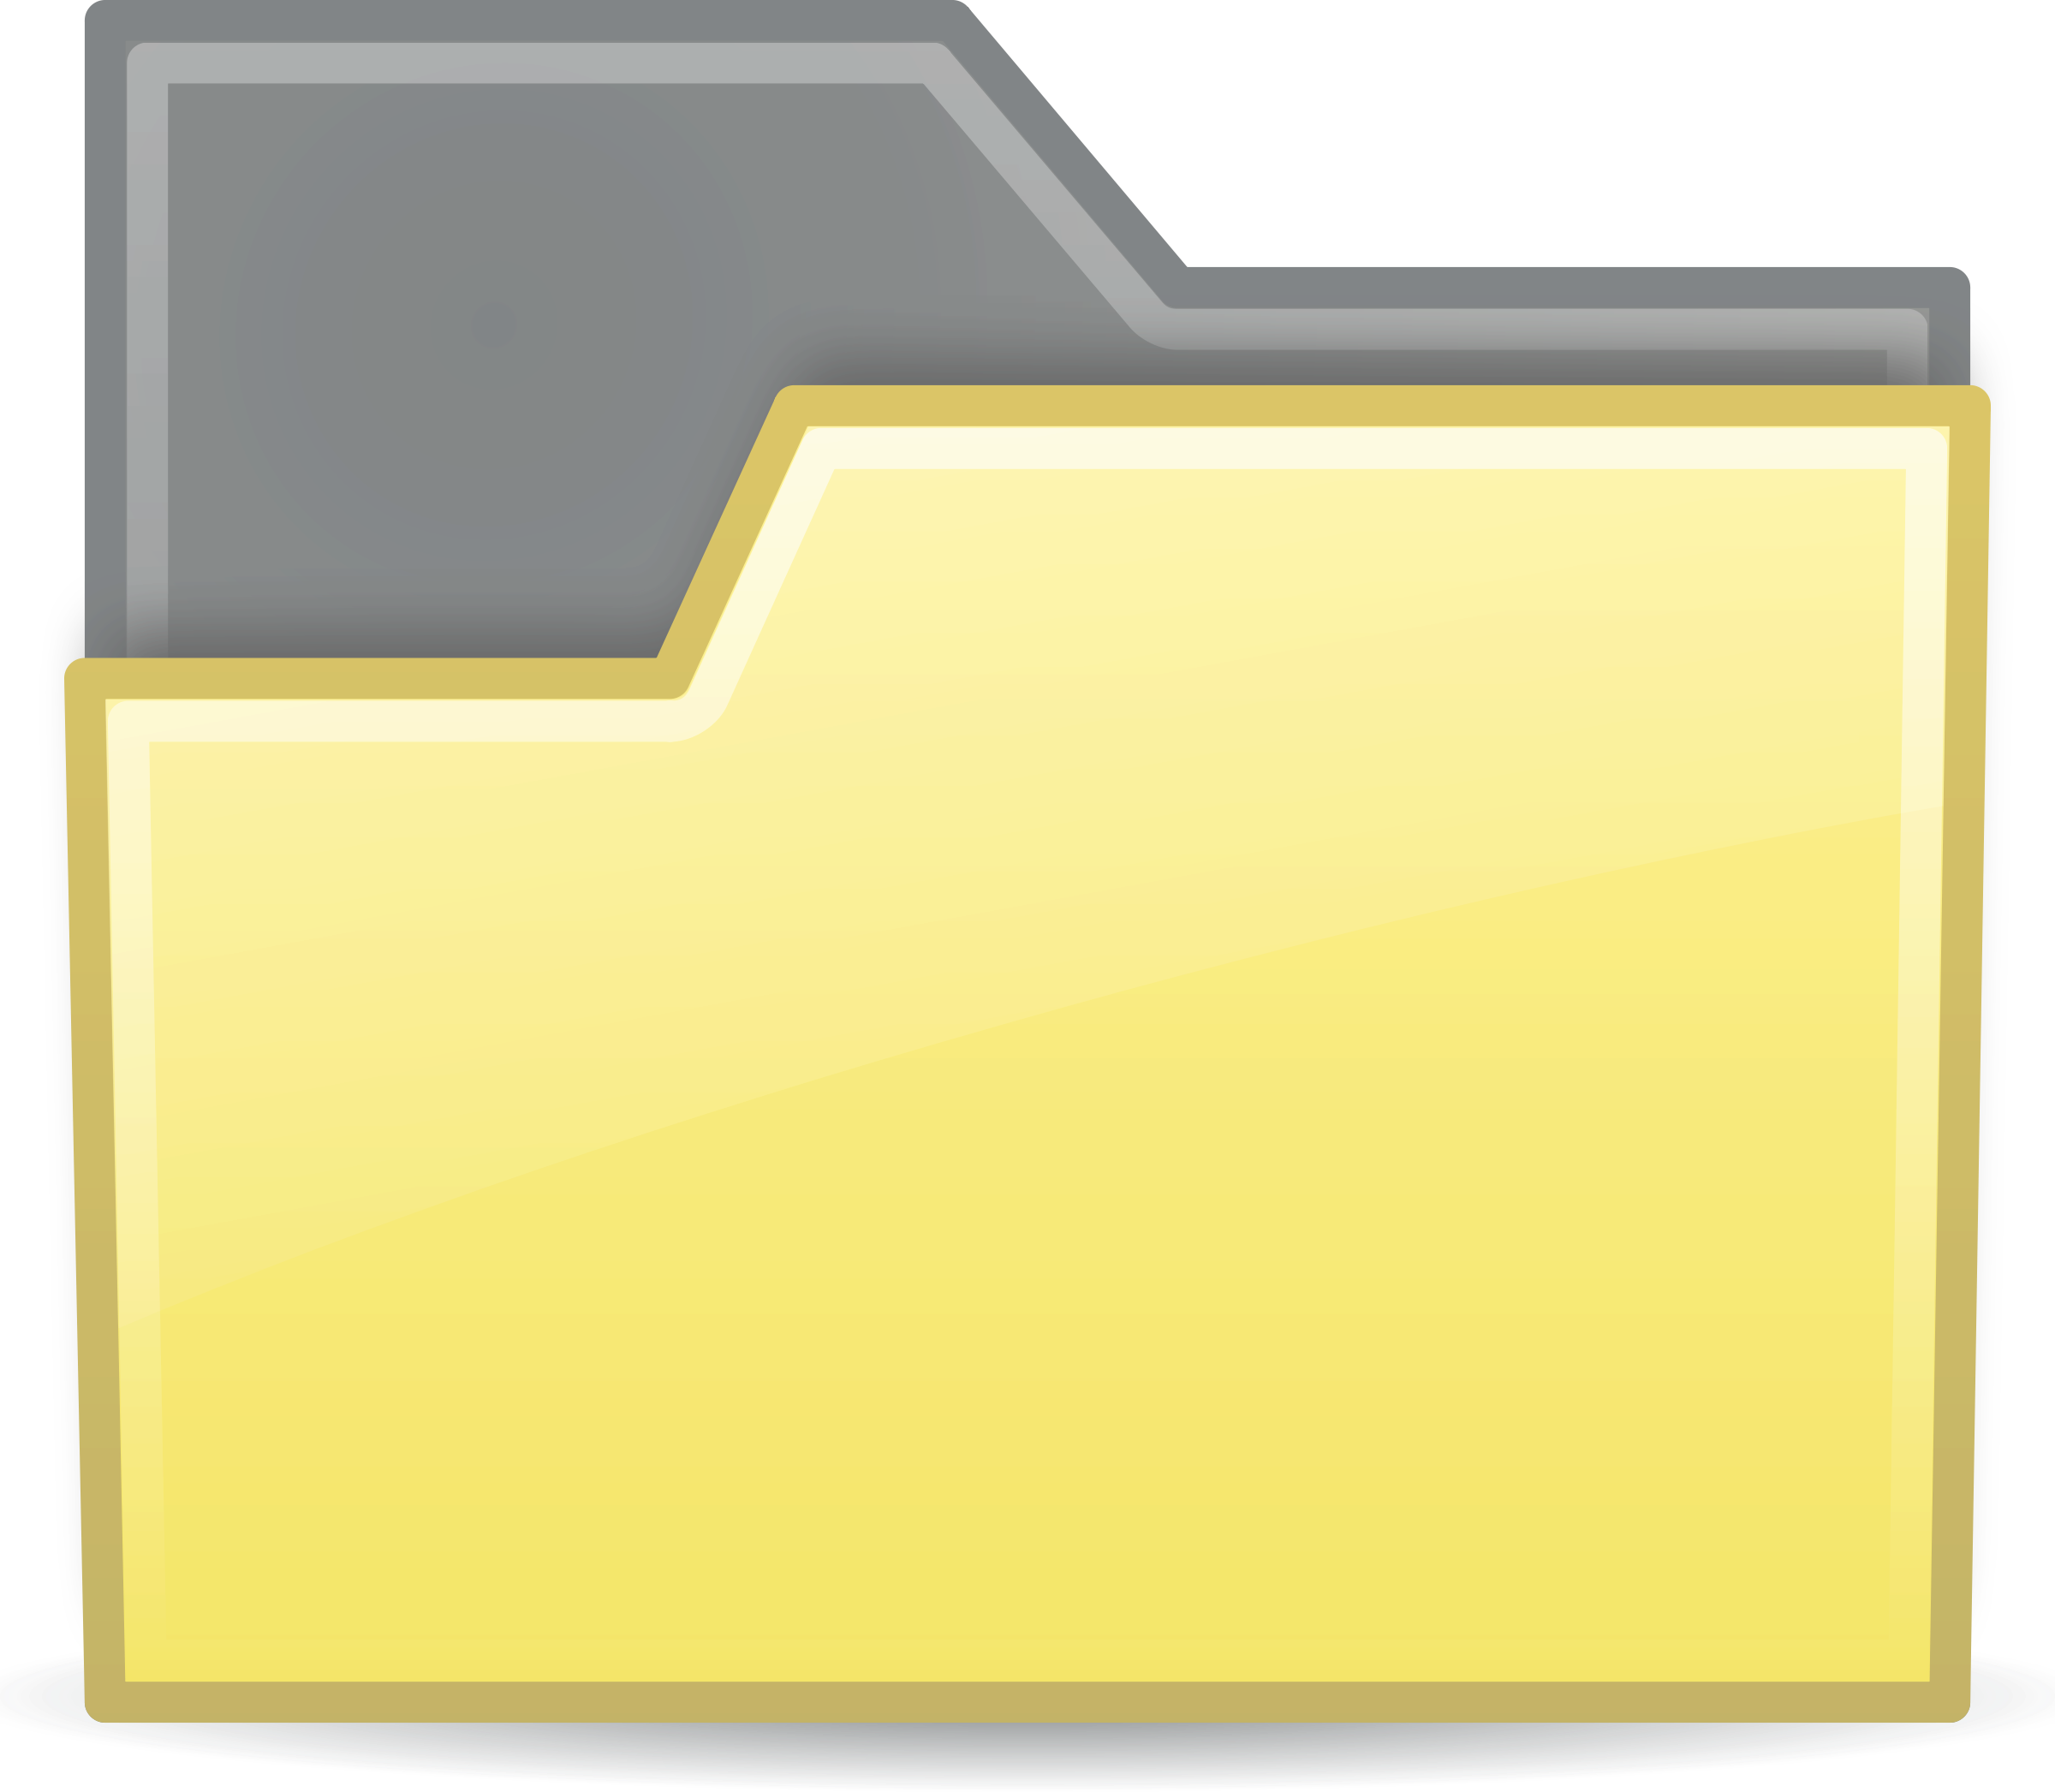 folder yellow semitransparent by sixsixfive